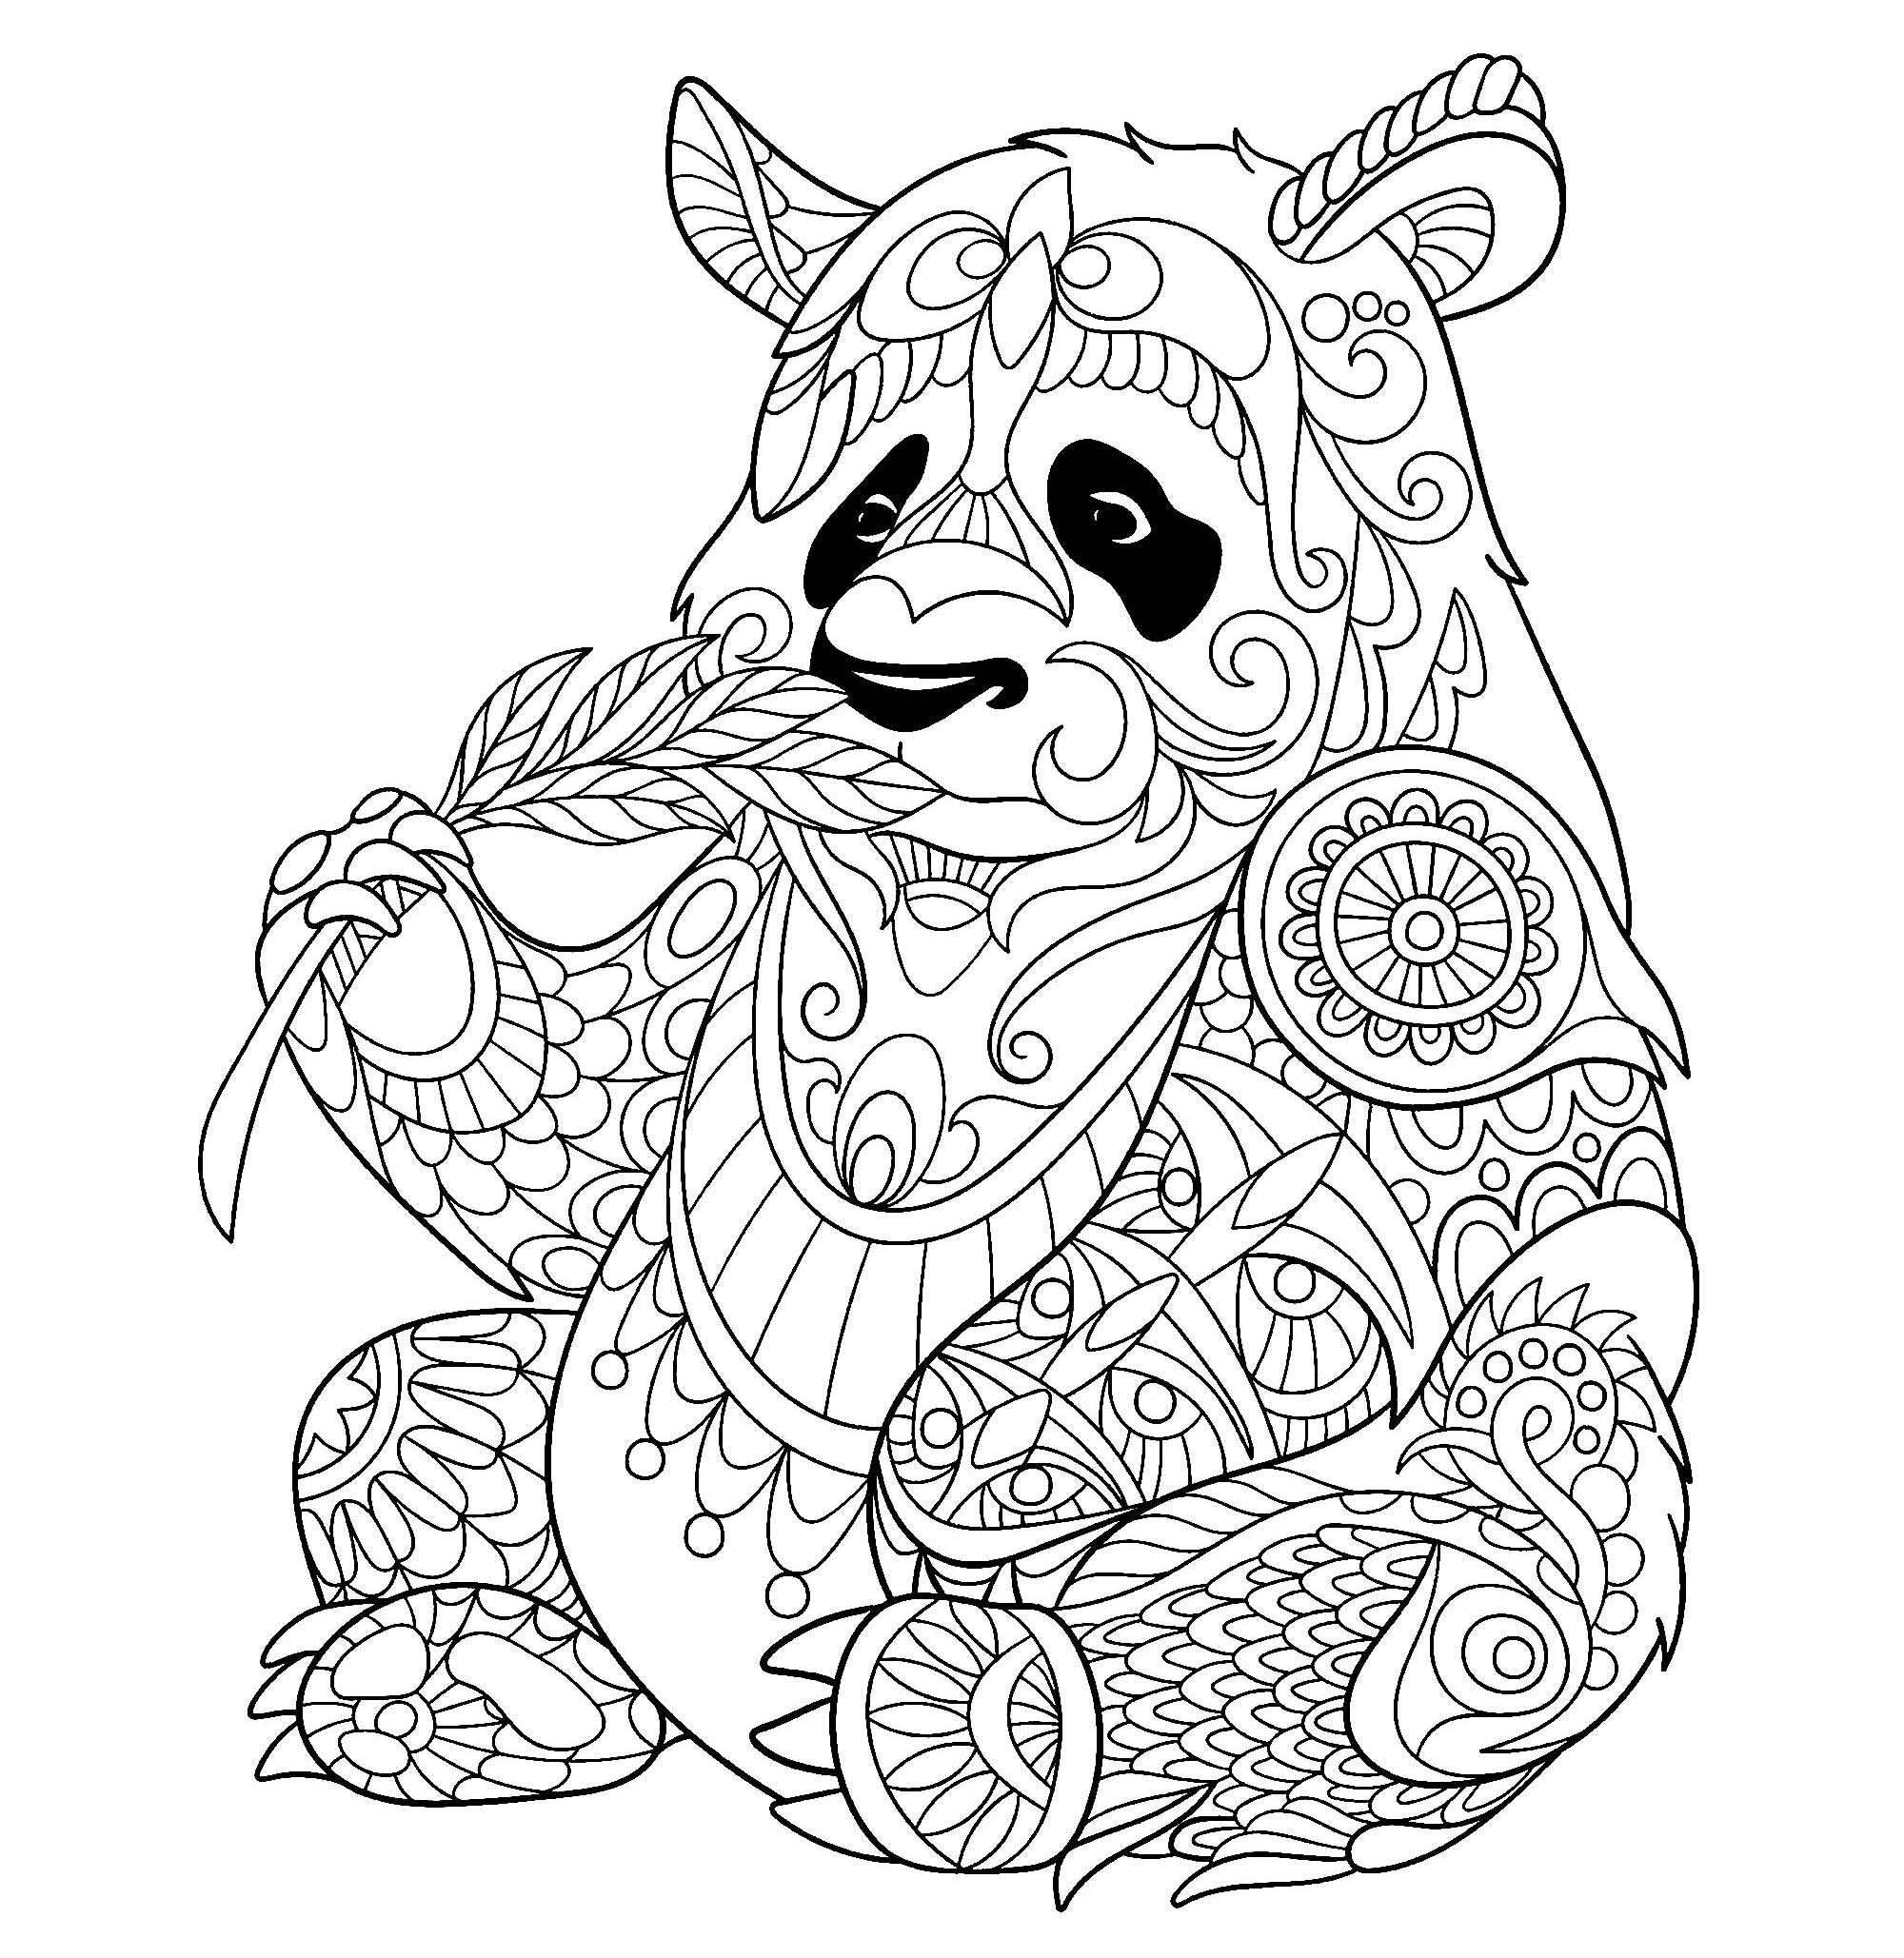 Pandas coloring page to download